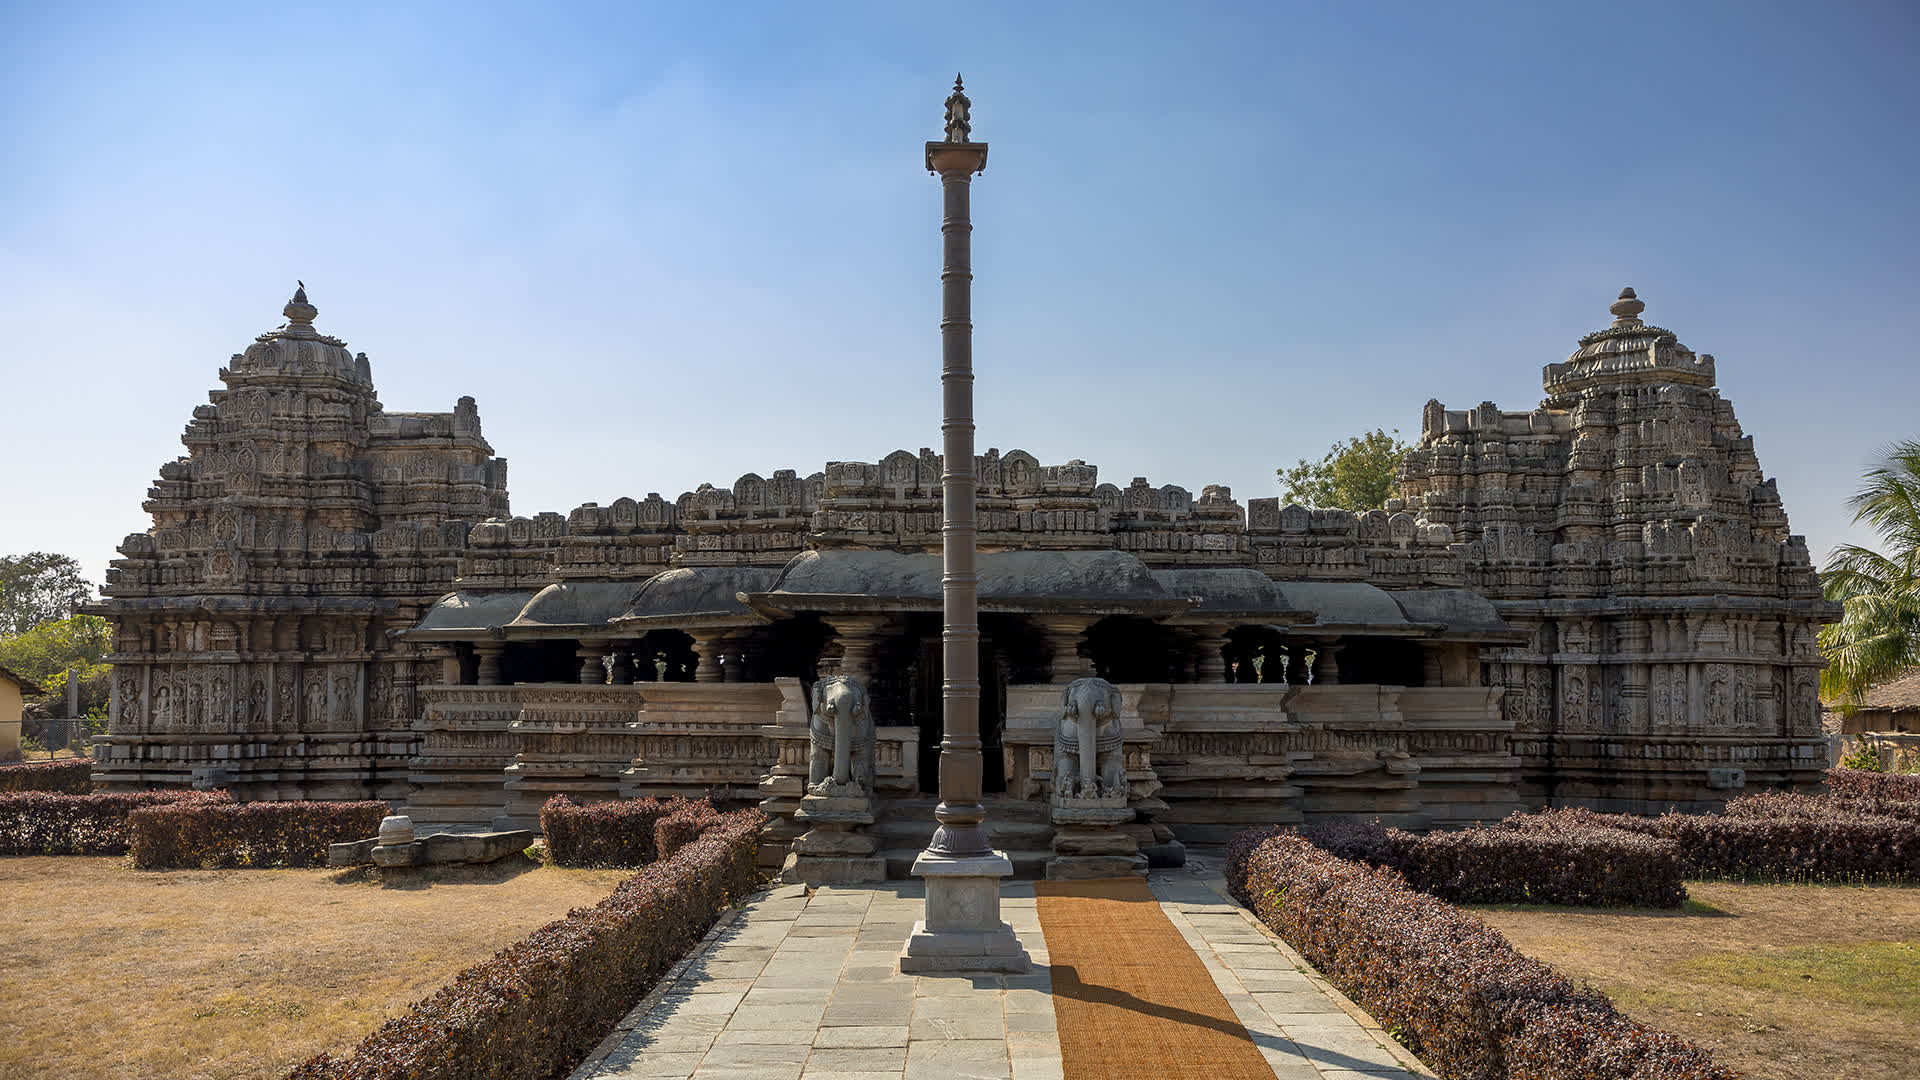 The Forgotten Temples of the Hoysalas